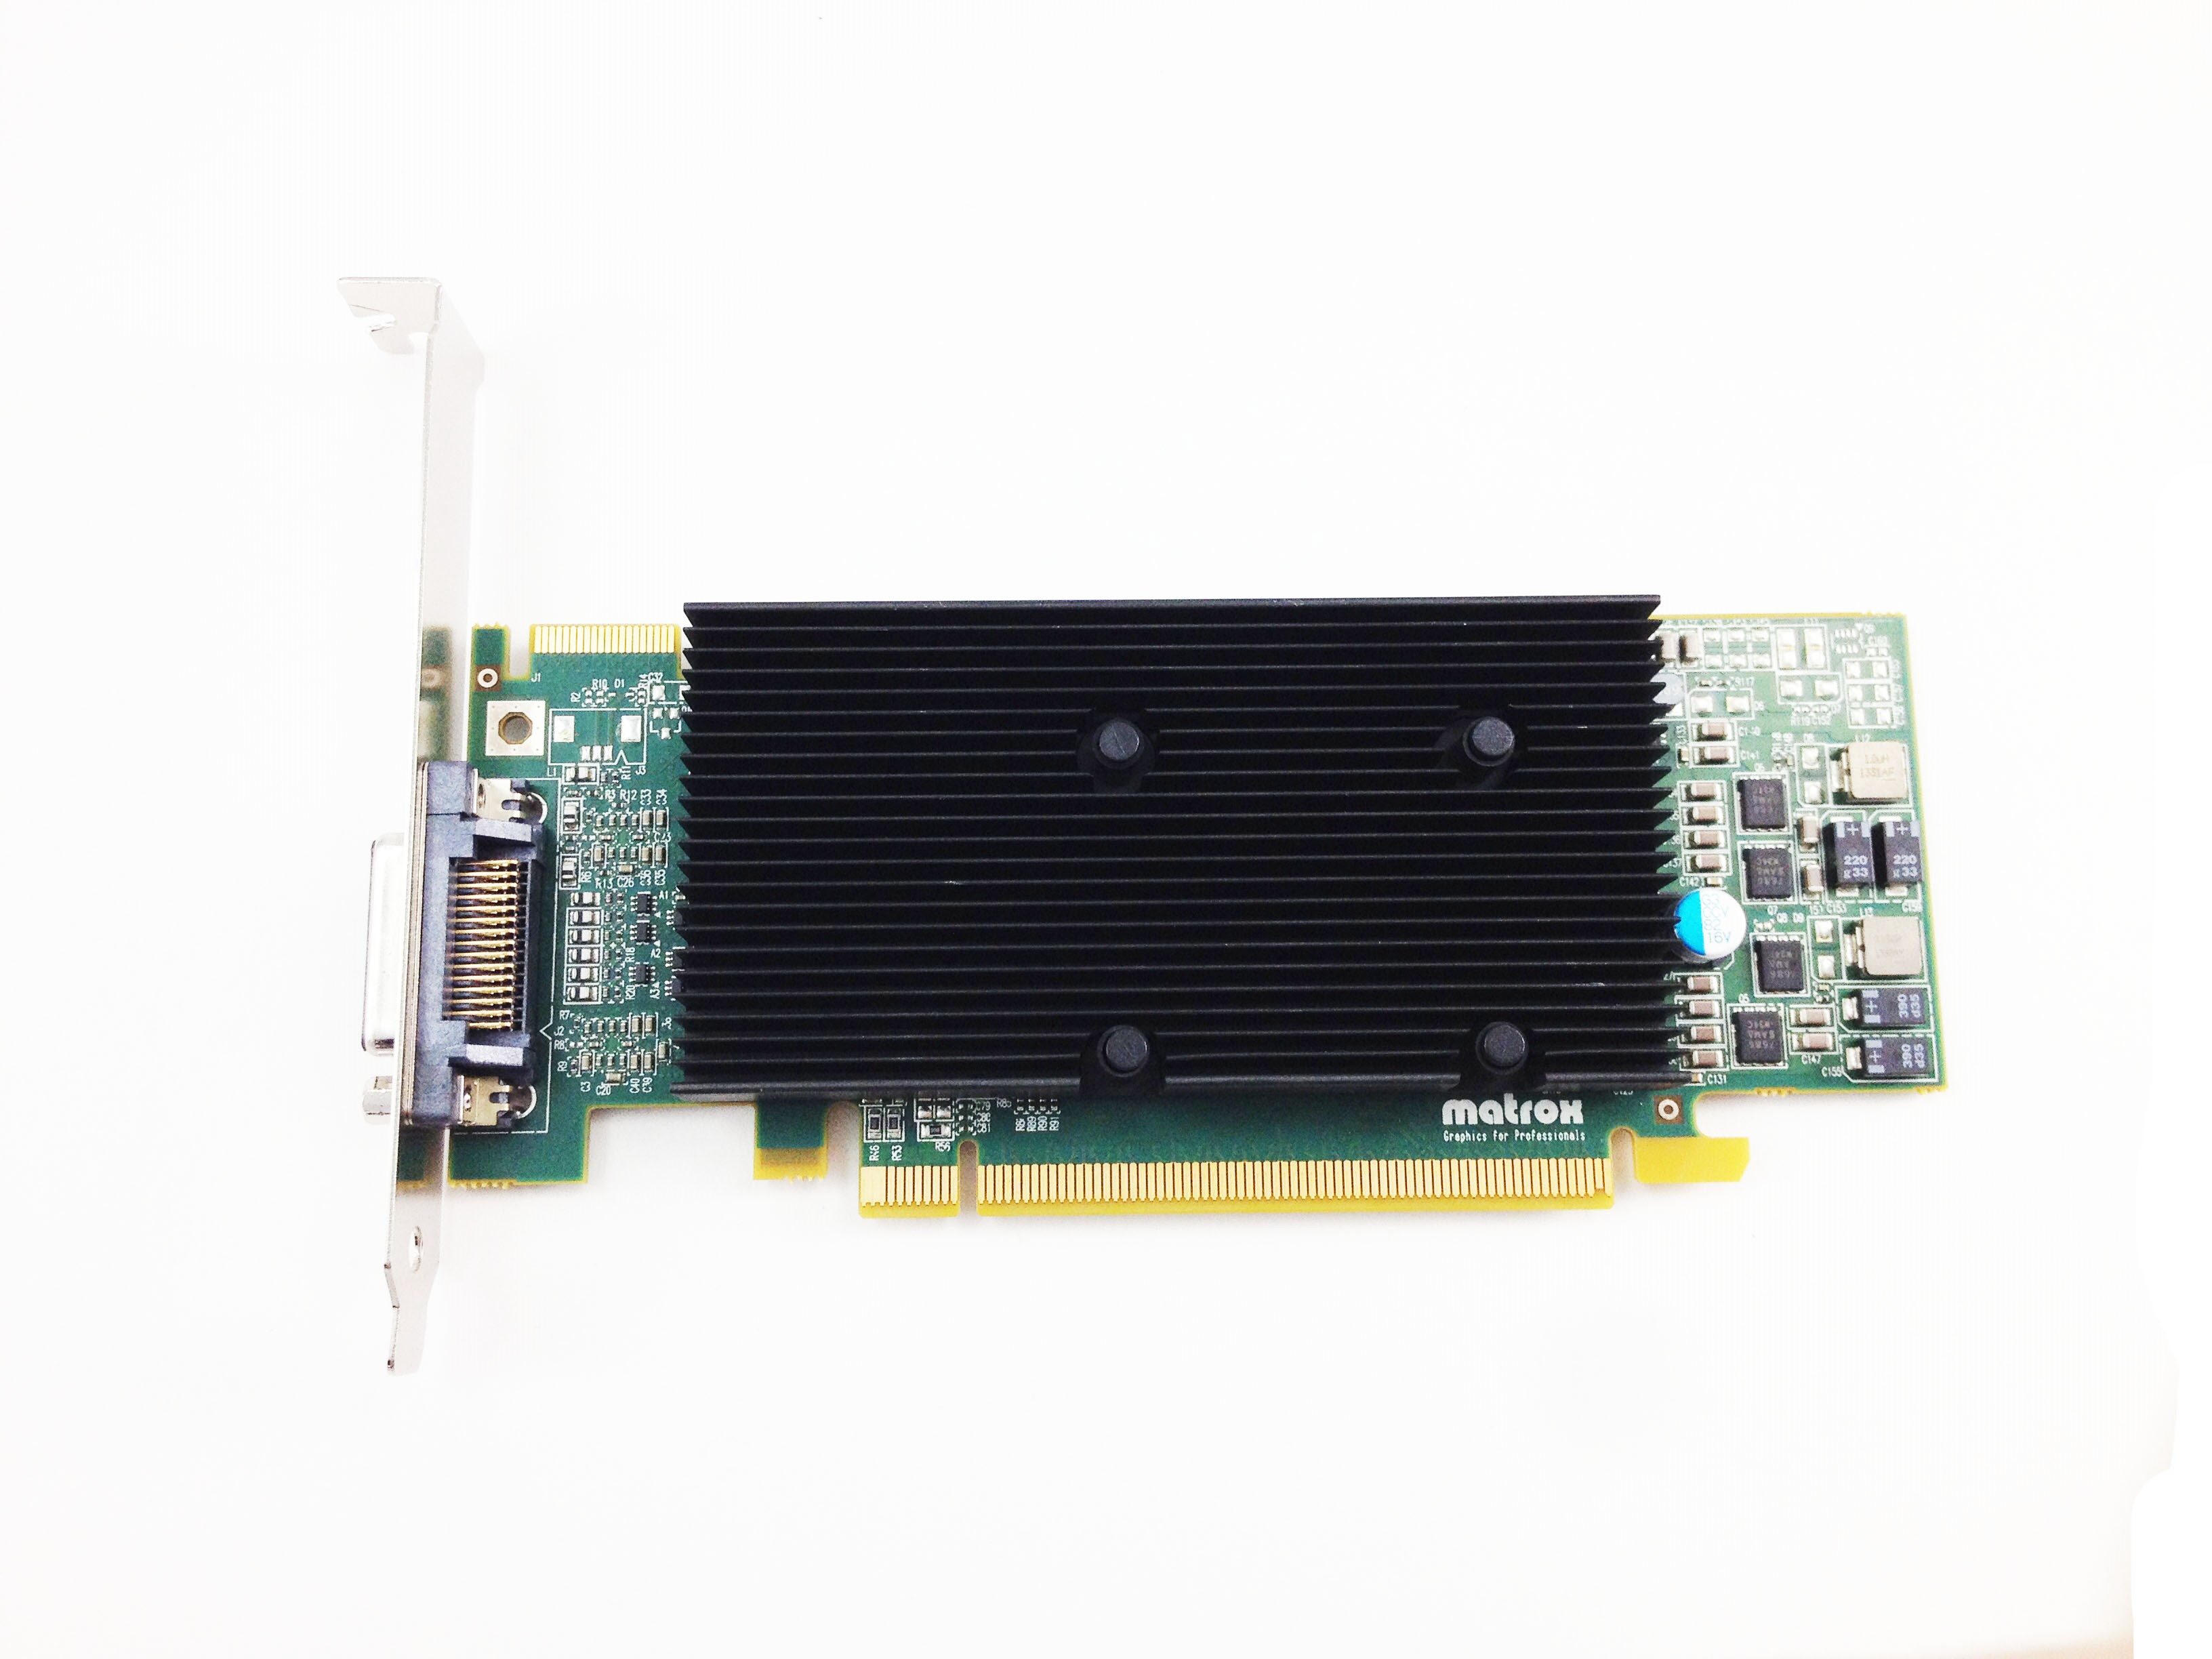 Matrox M9120 Plus Lp PCI-E X16 512MB DDR2 Video Card (M9120-E512LPUF)